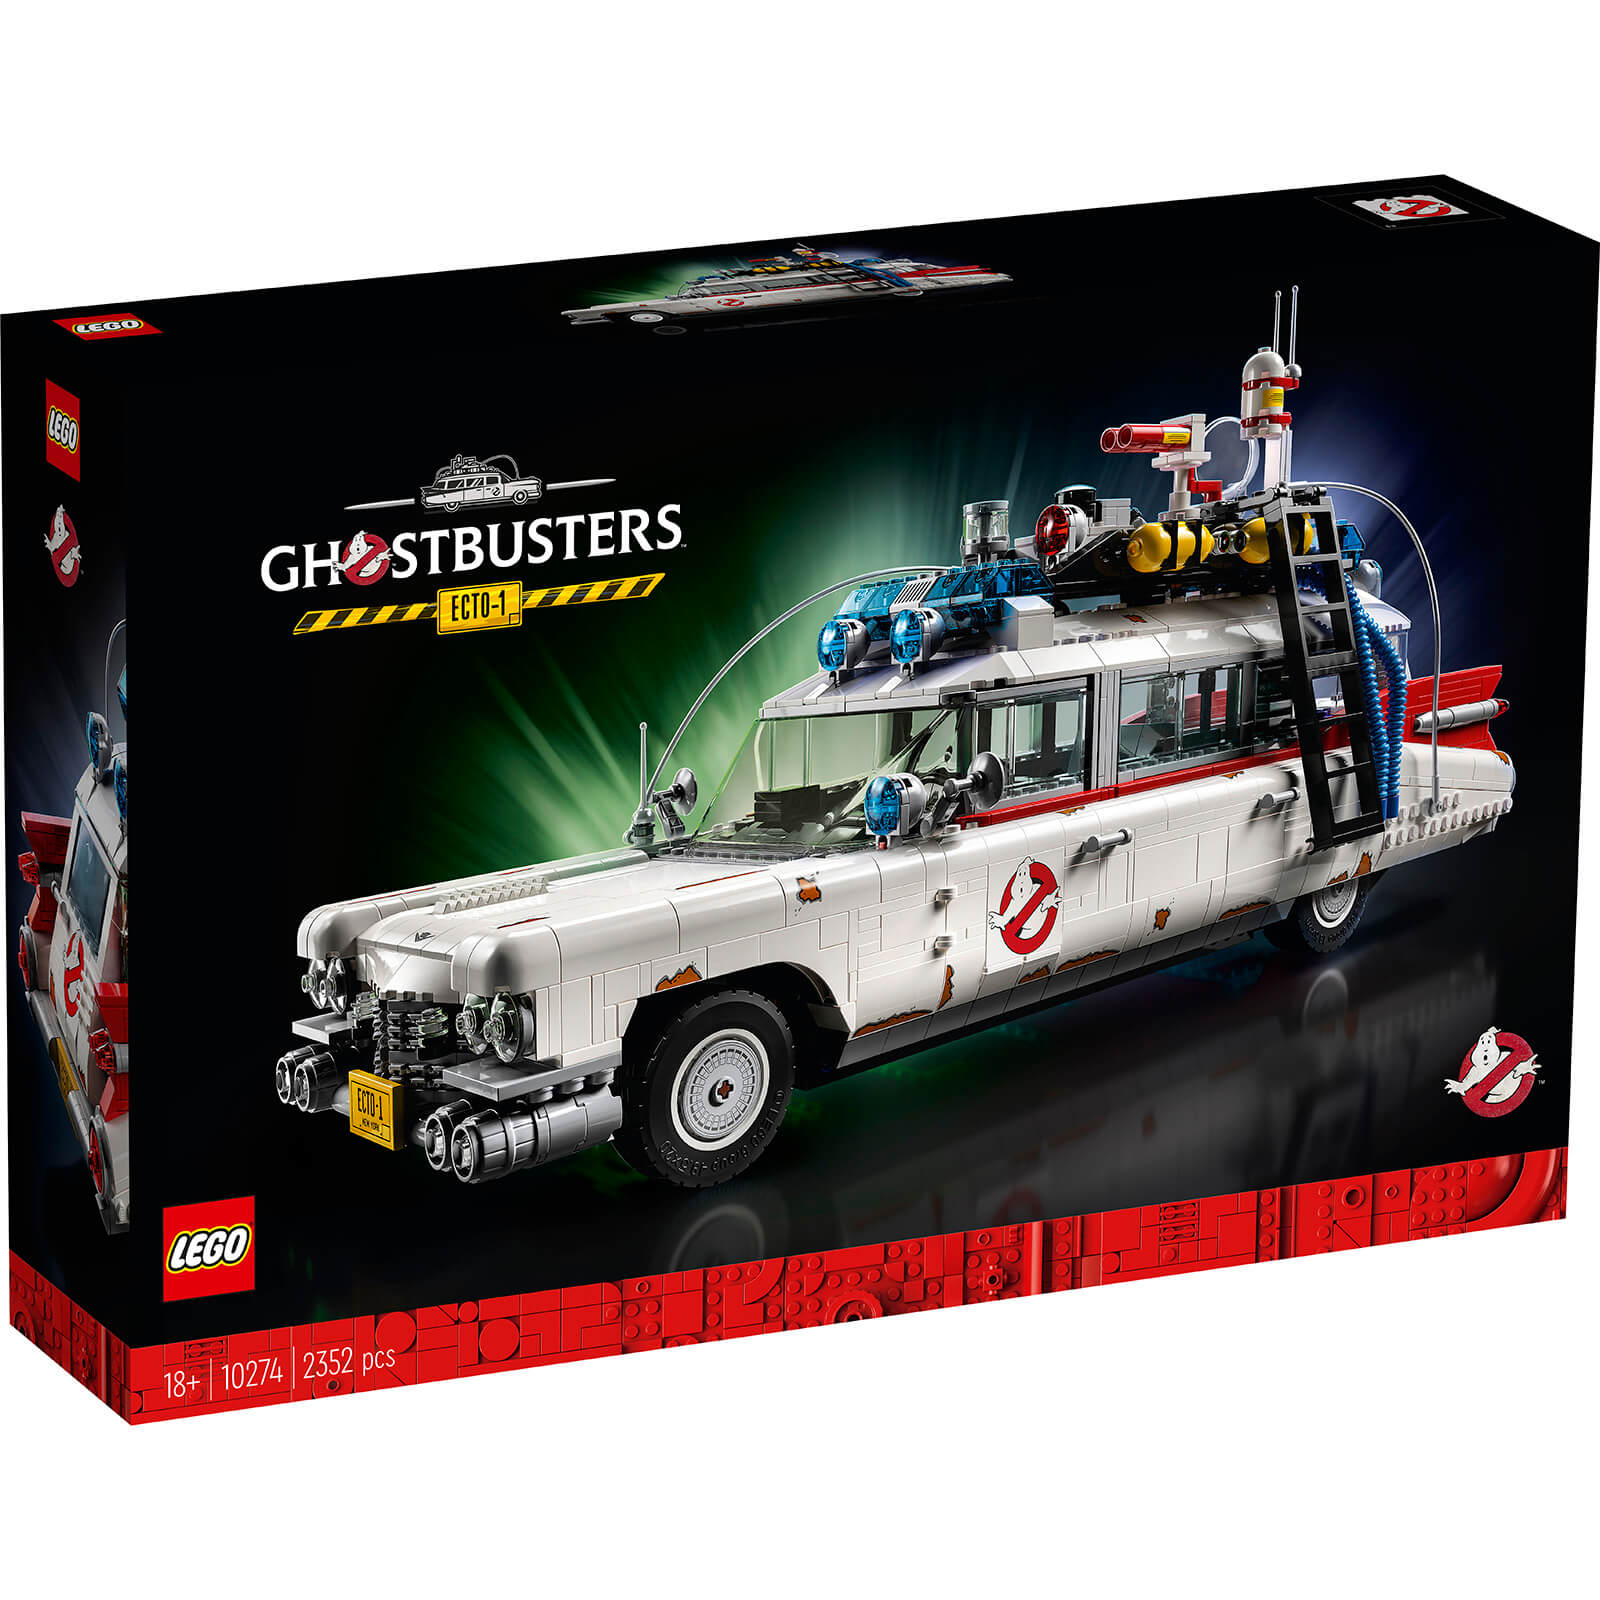 Image of LEGO Creator Expert: Ghostbusters ECTO-1 (10274)